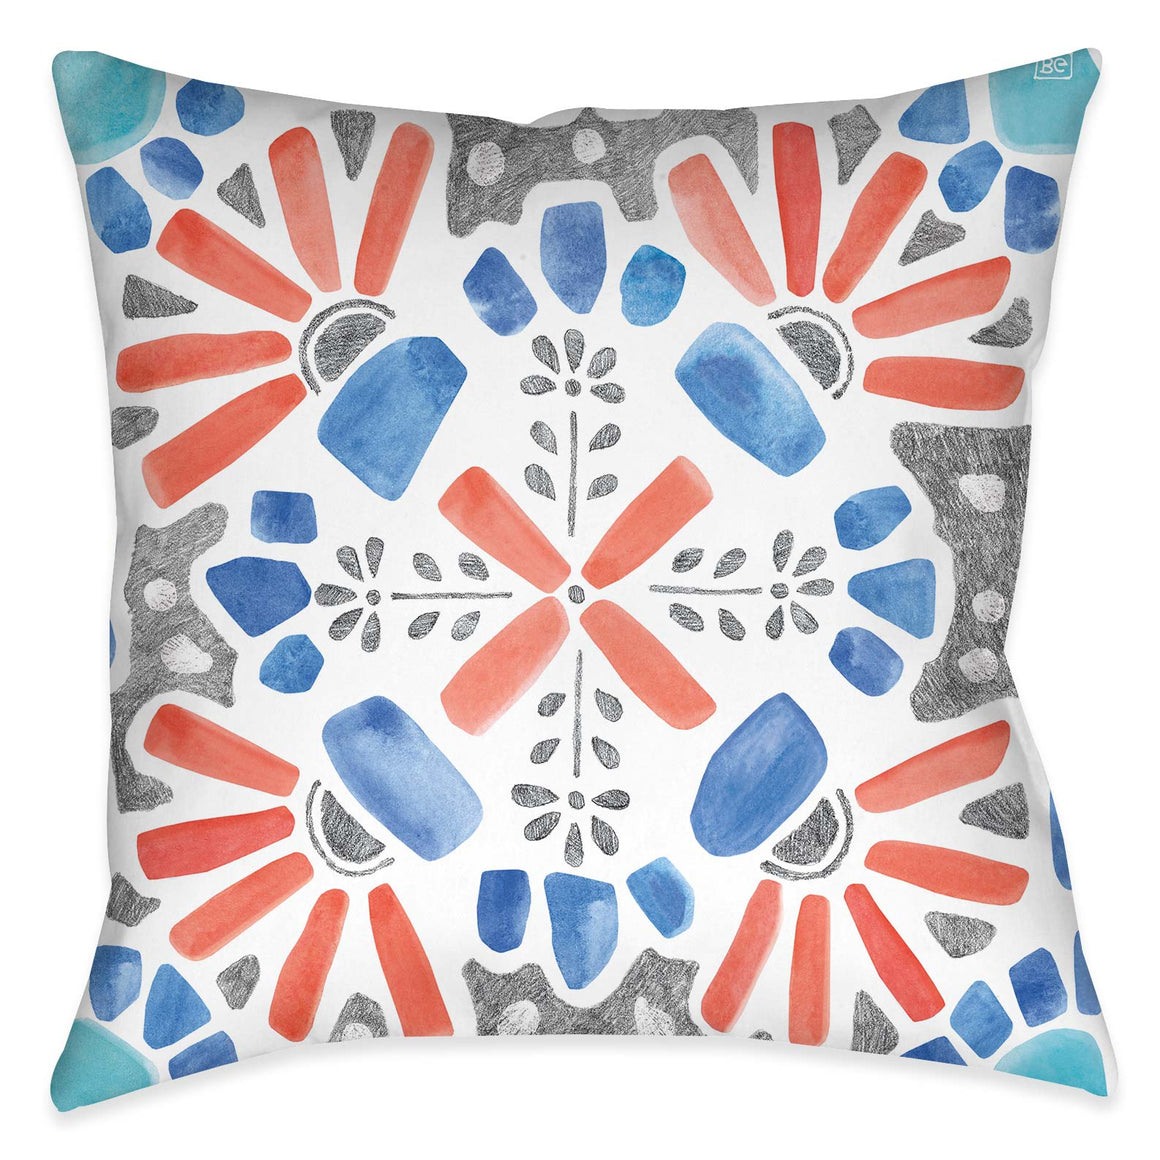 "The ""Coastal Mosaic I Indoor Decorative Pillow"" features a modern must-have mosaic design. The eclectic balance of coral, aqua and grey colors exposes its artistic rendering giving it a unique flare inspired by traditional mosaic tile designs."